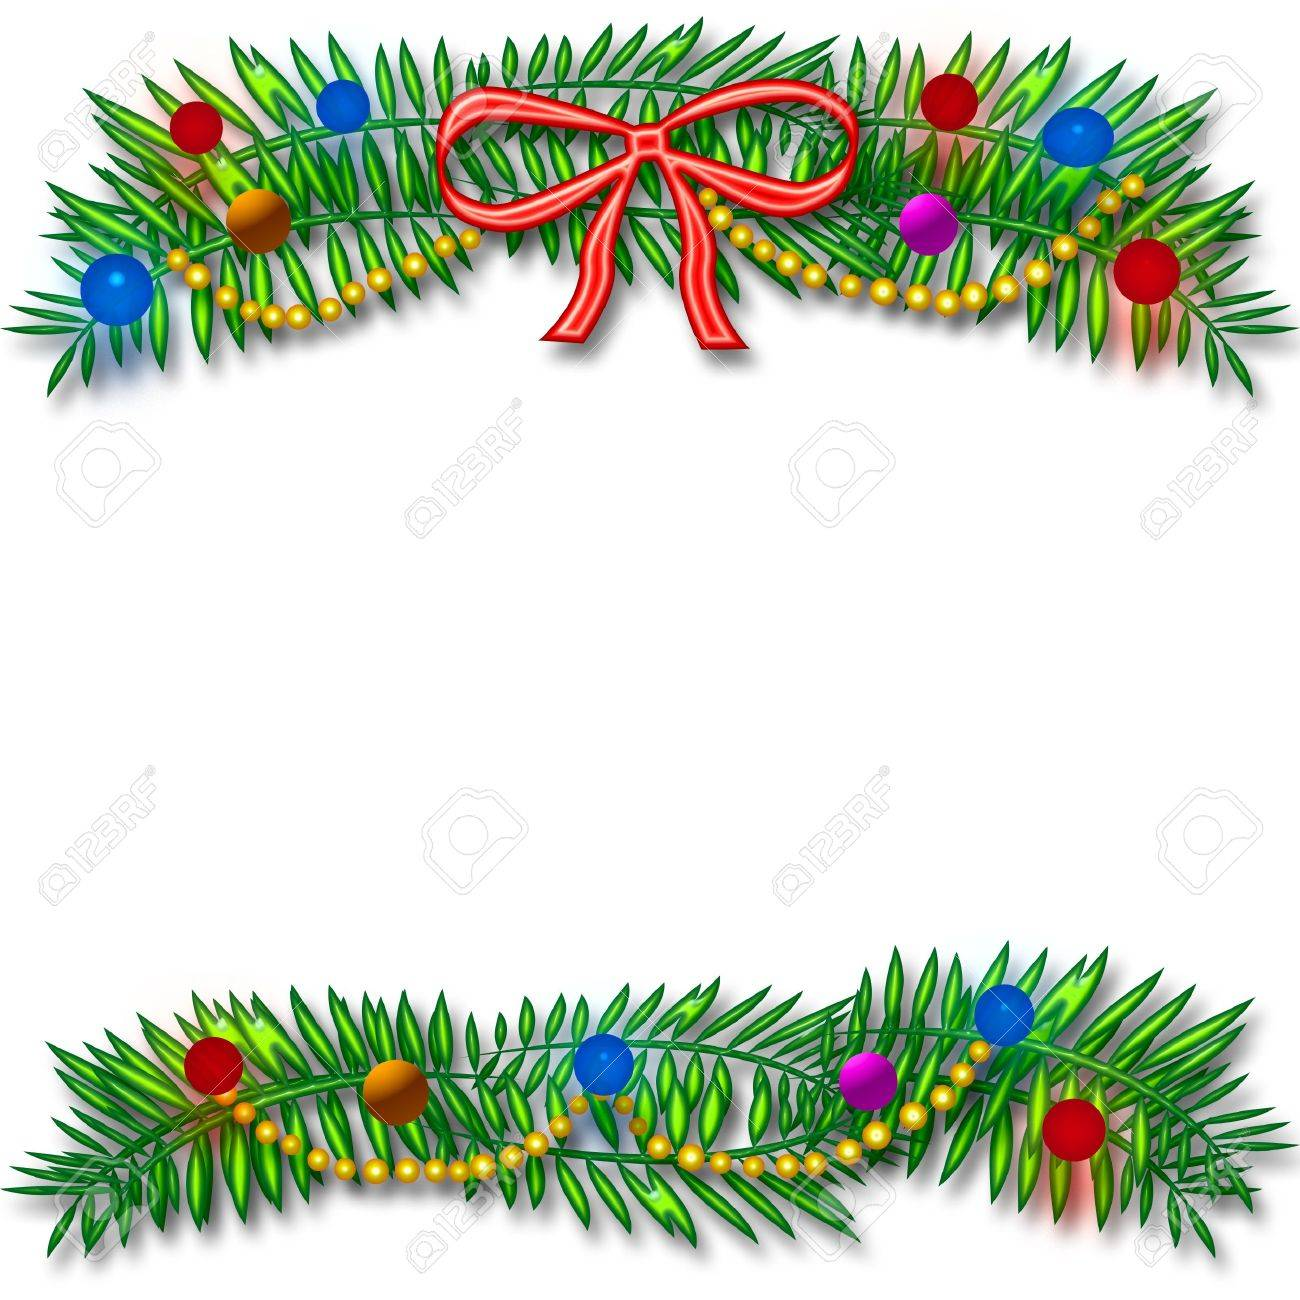 Picture frame christmas ornaments - Christmas Frame Colorful Ornaments And Beads Around Blank Center Stock Photo 3729338